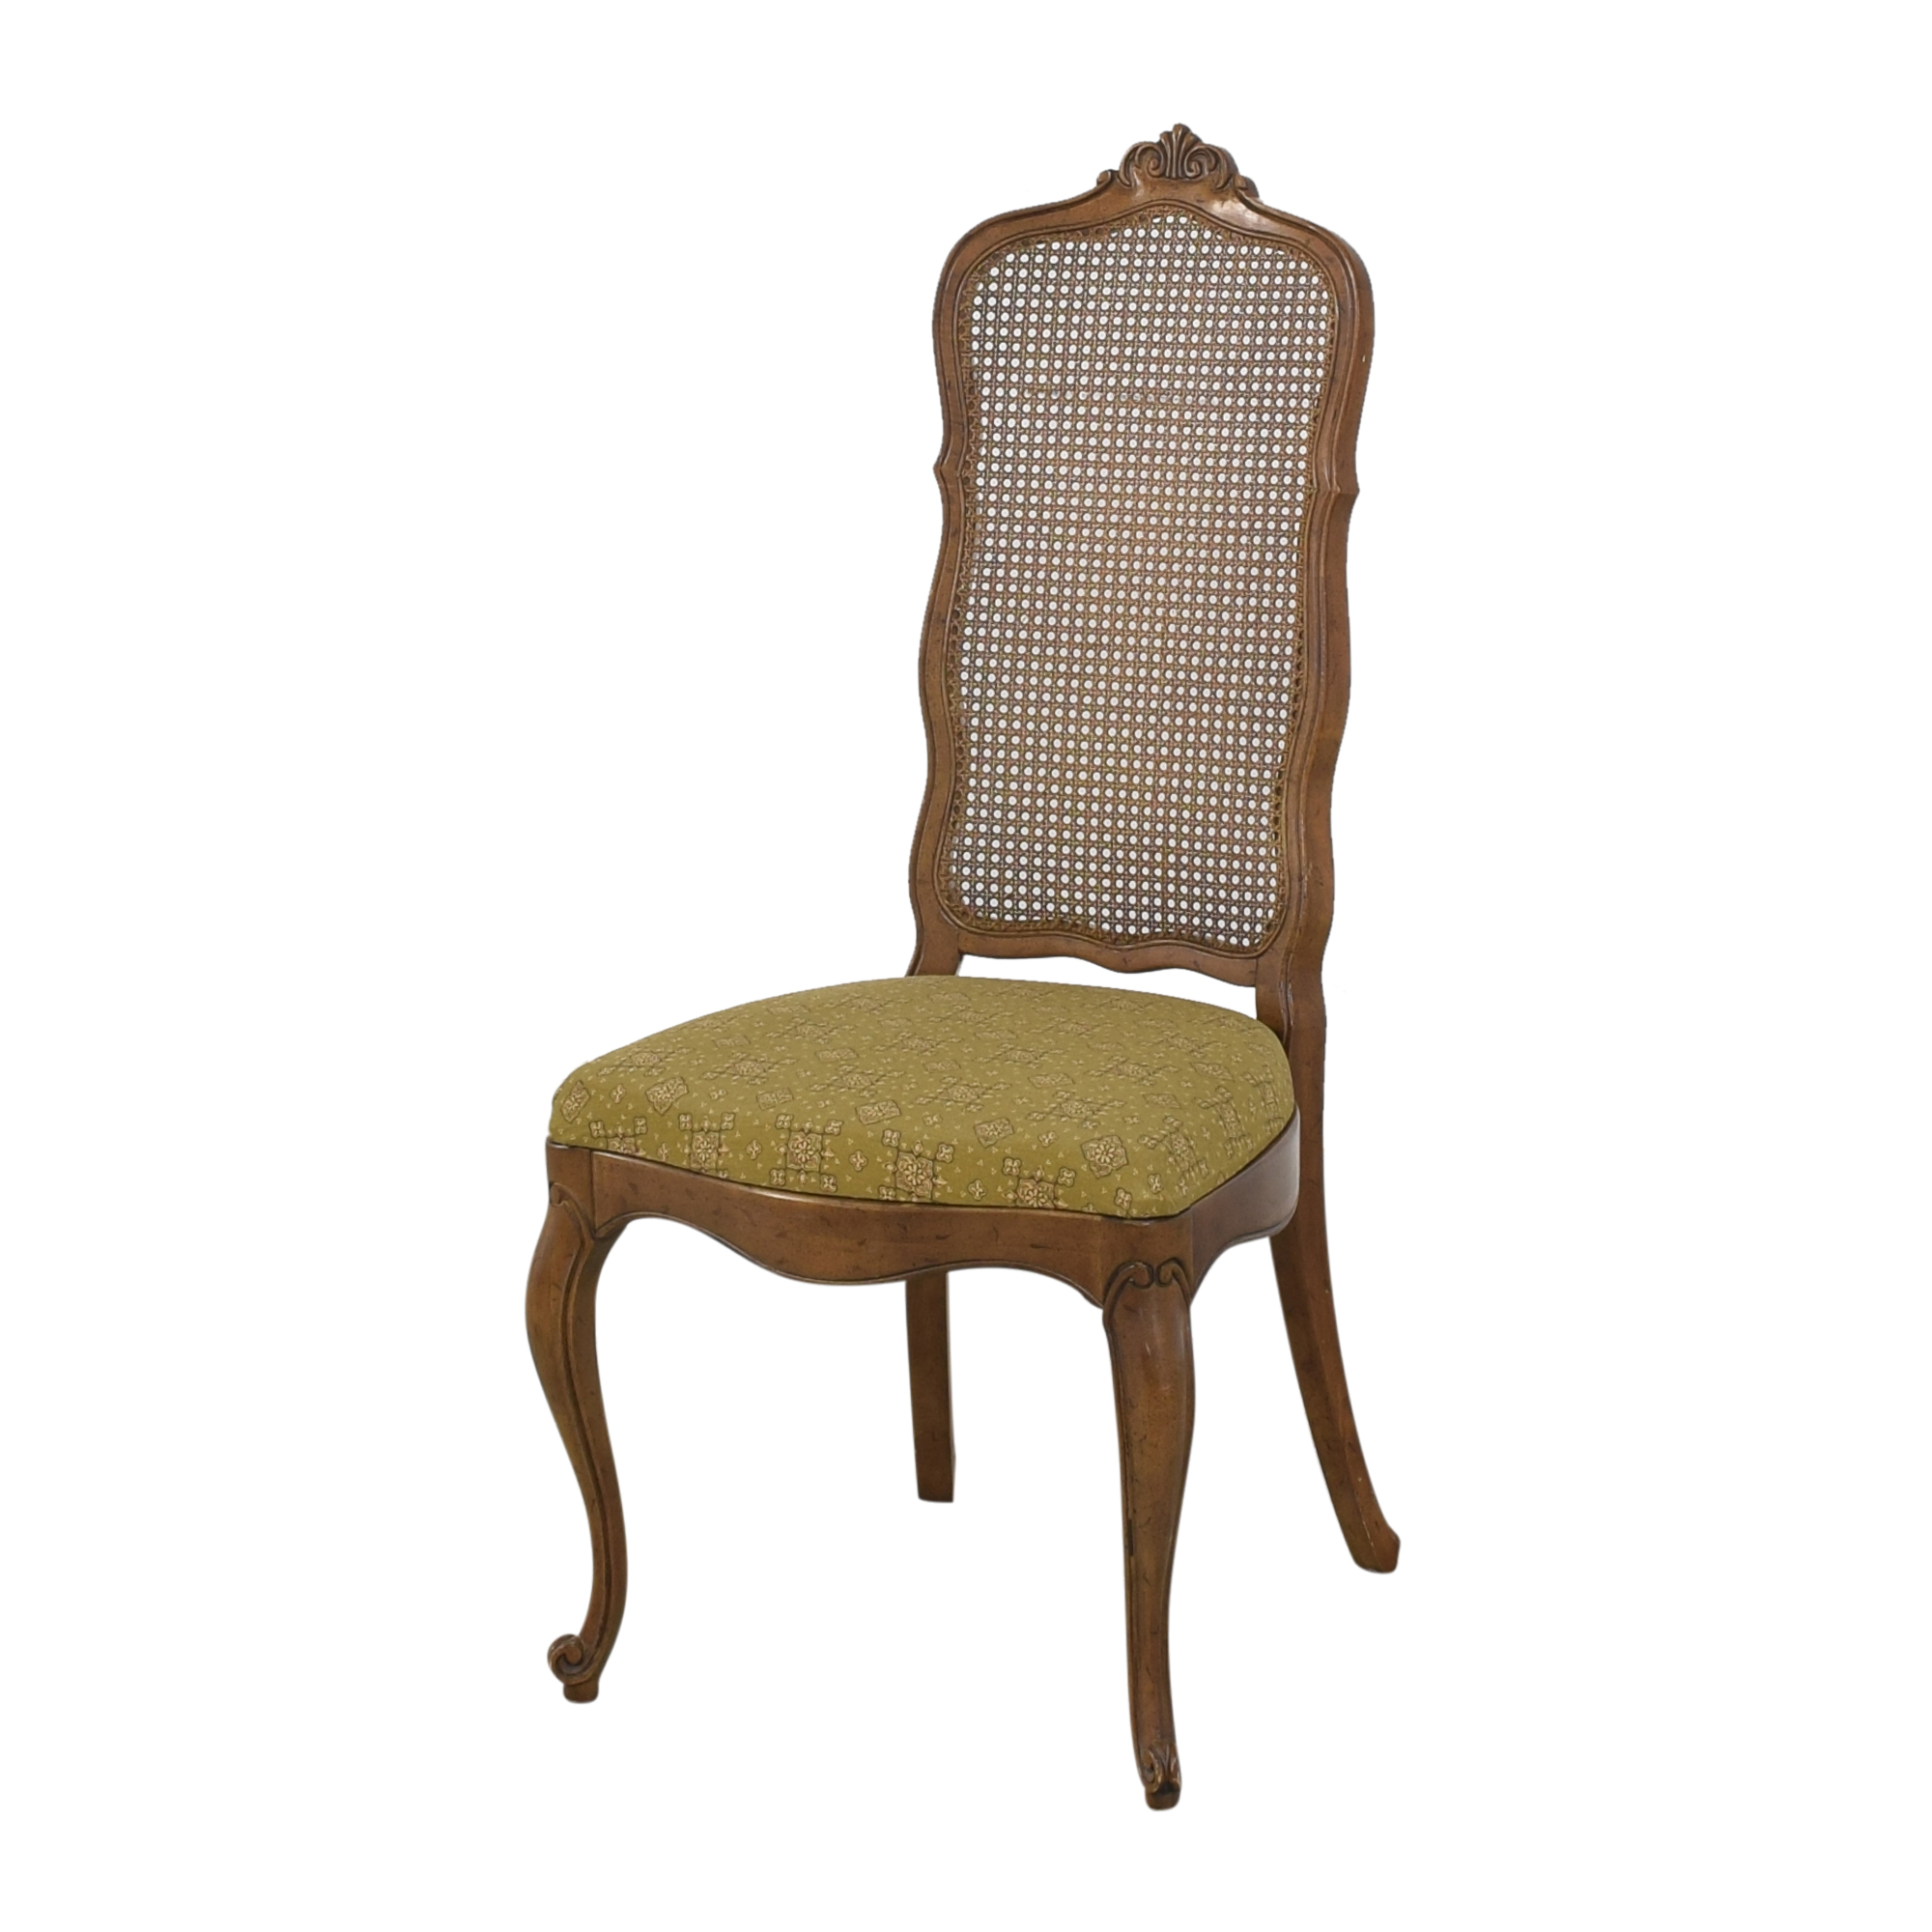 Drexel Drexel Touraine Dining Chairs dimensions